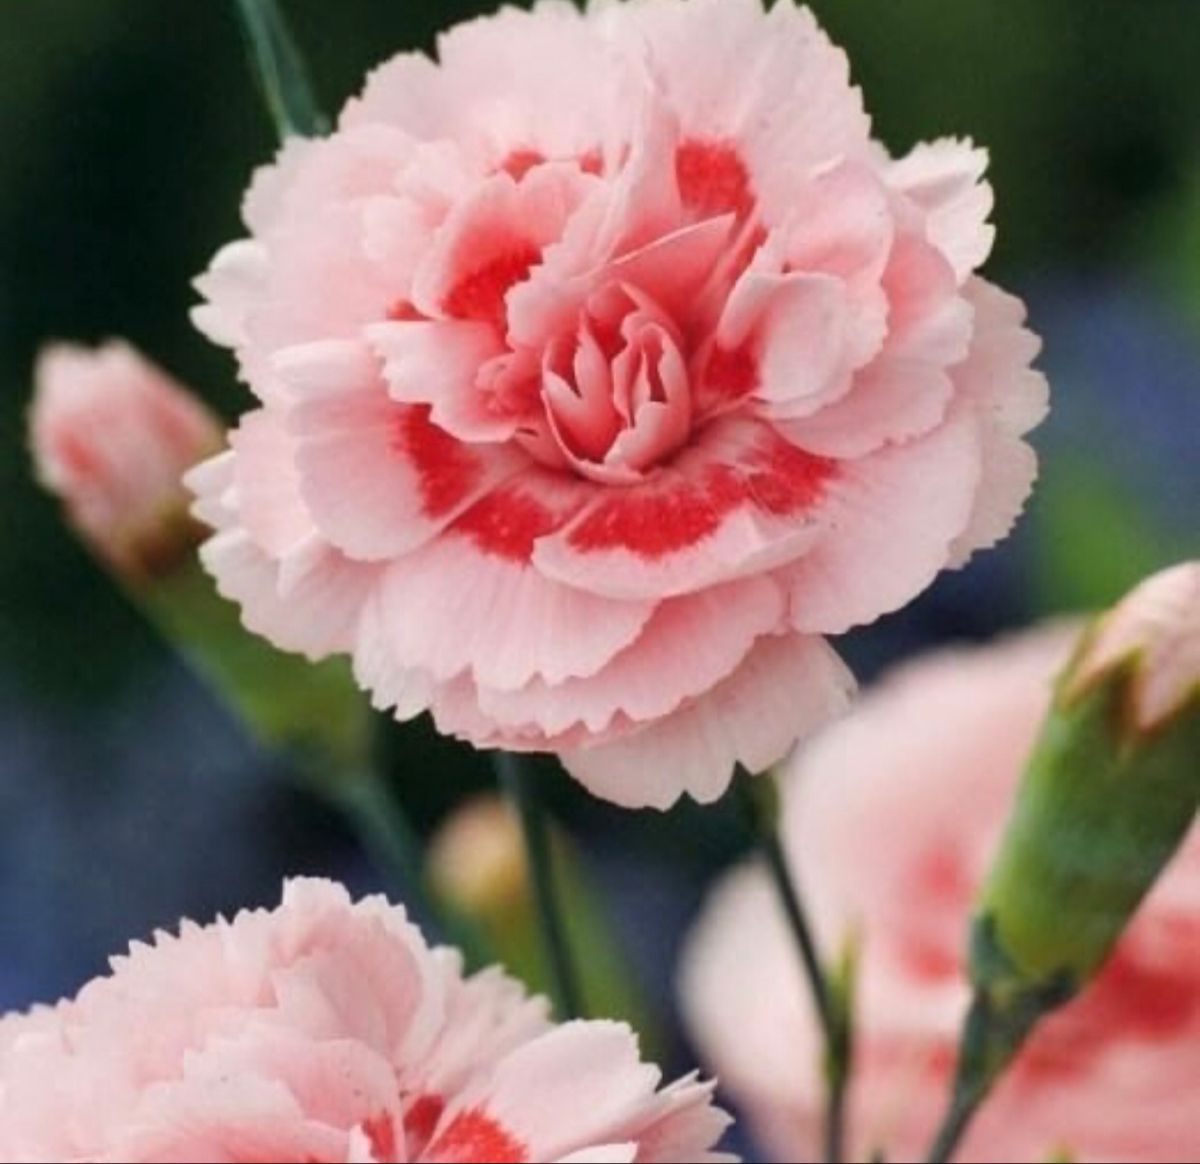 Carnations In 2020 Carnation Flower Pink Plant Flowers For Sale